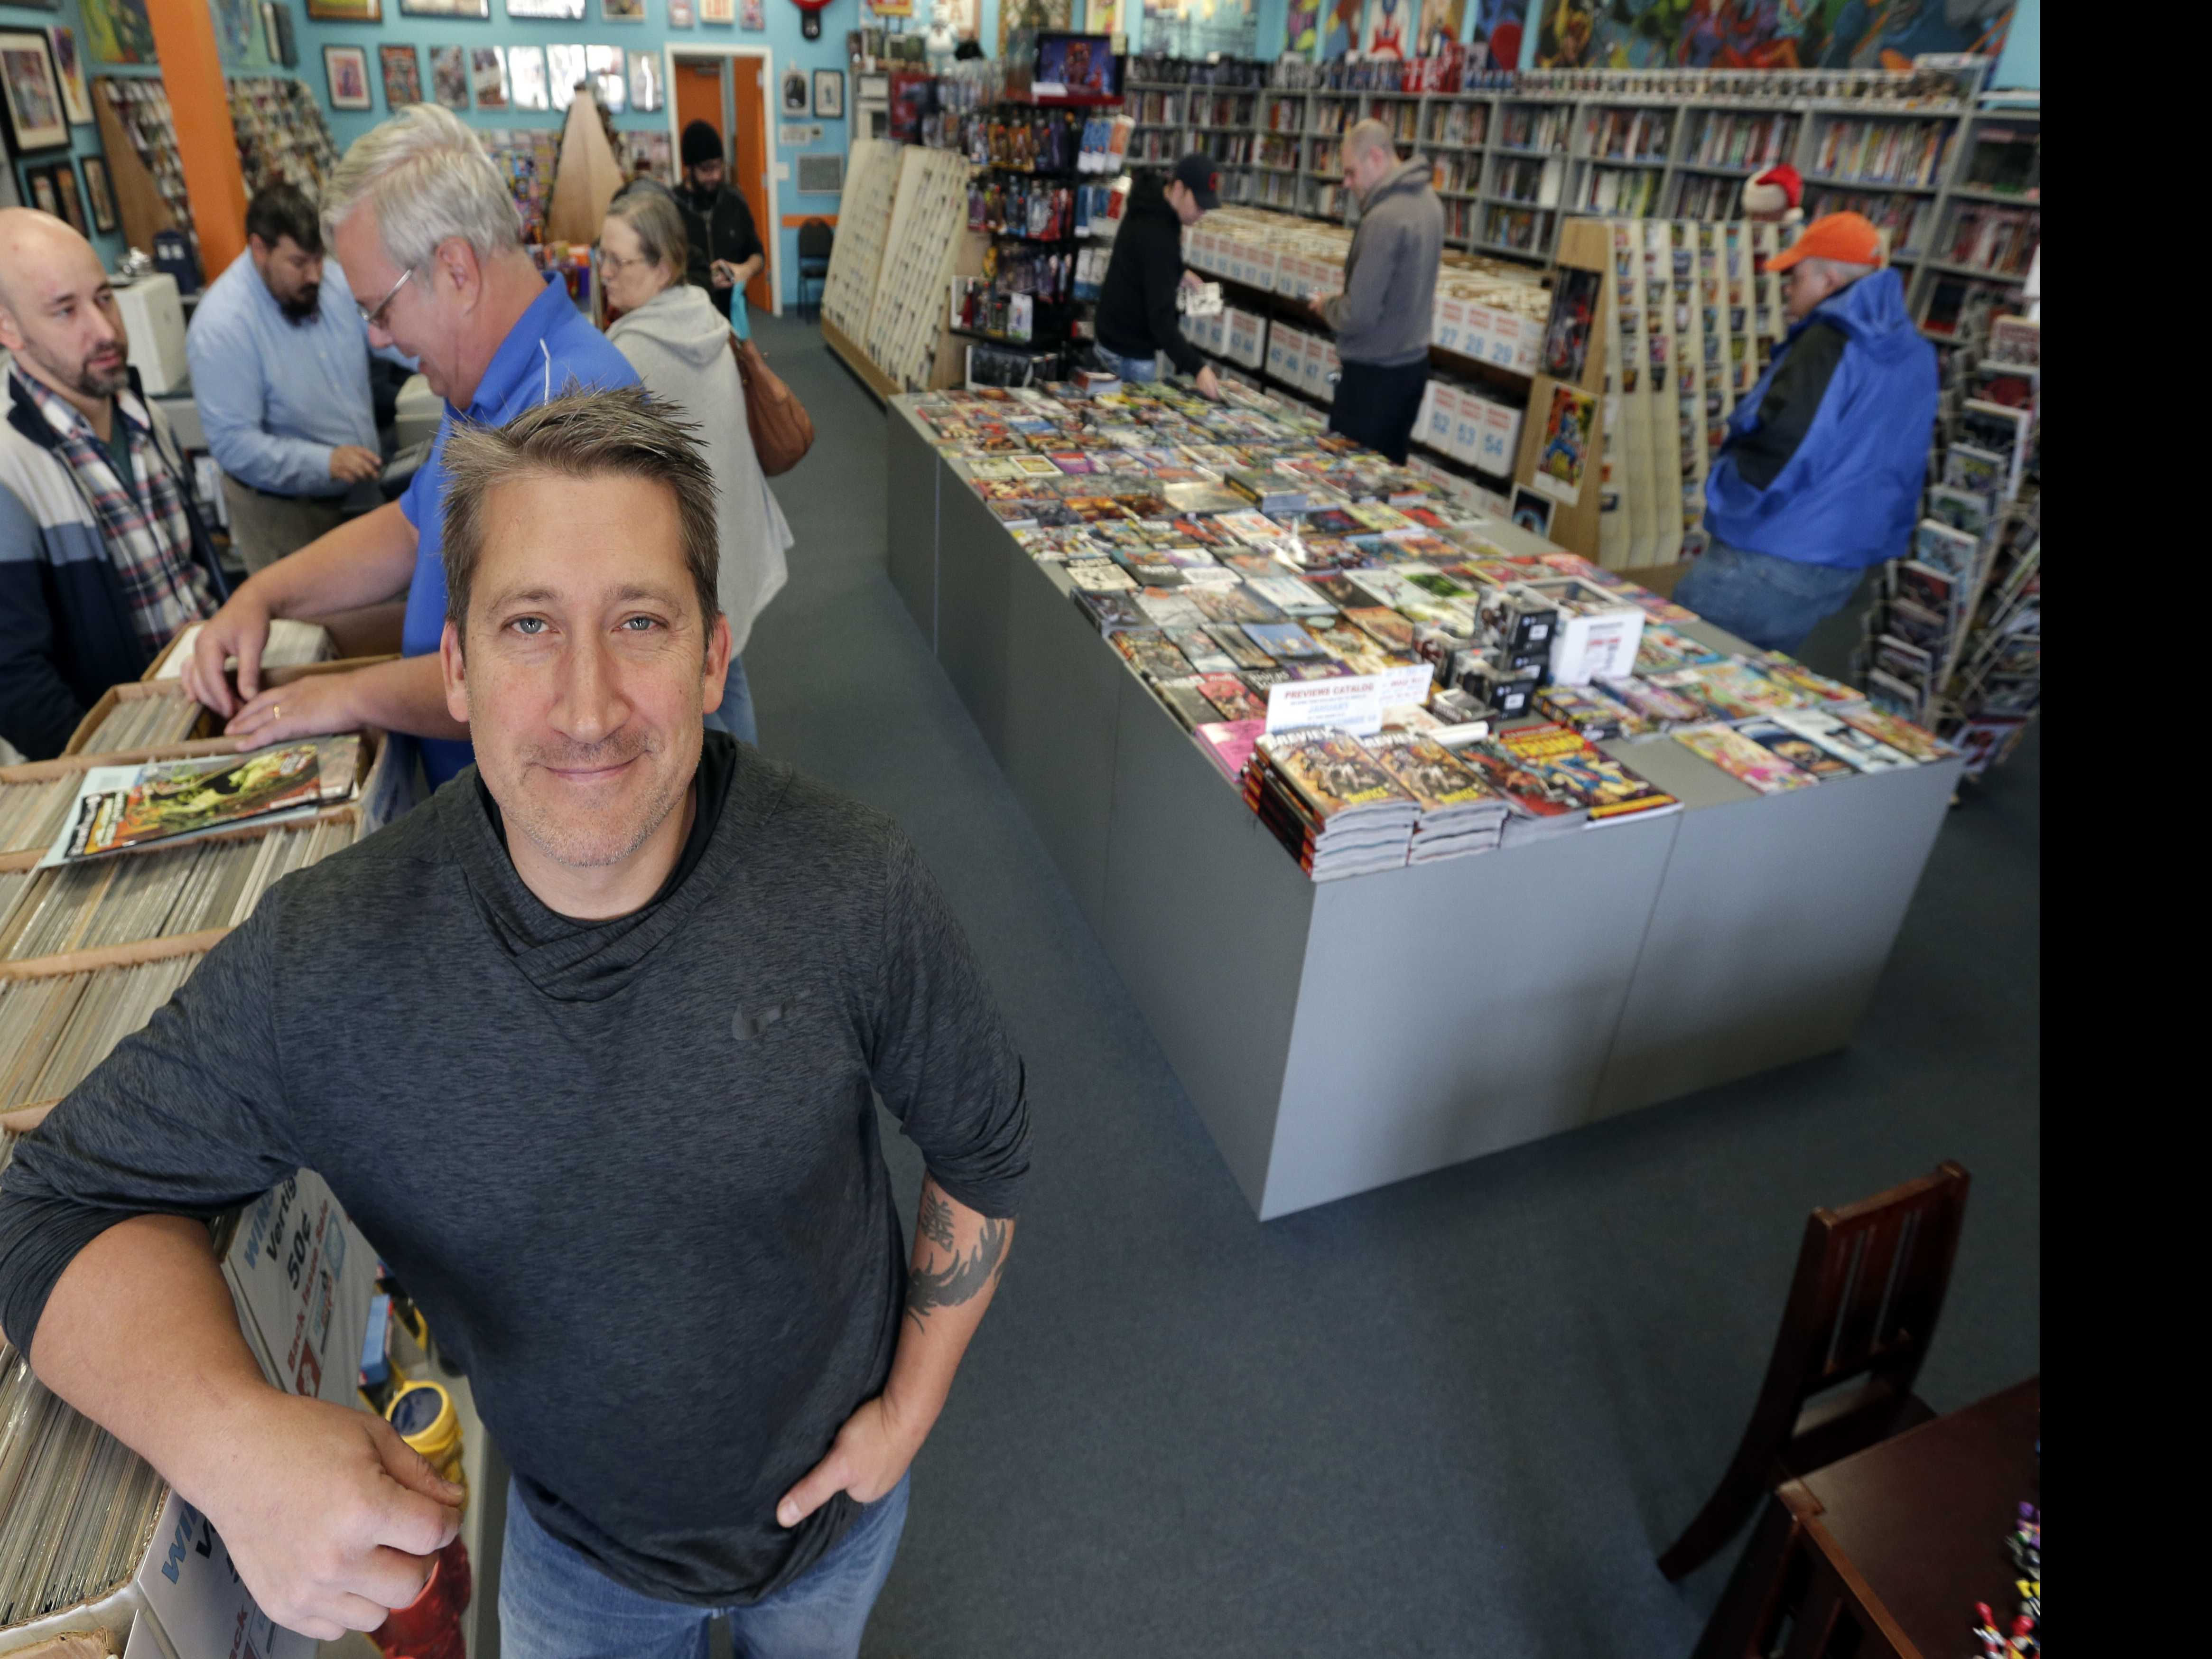 Small Retailers Aim for Emotional Ties Big Chains May Lack